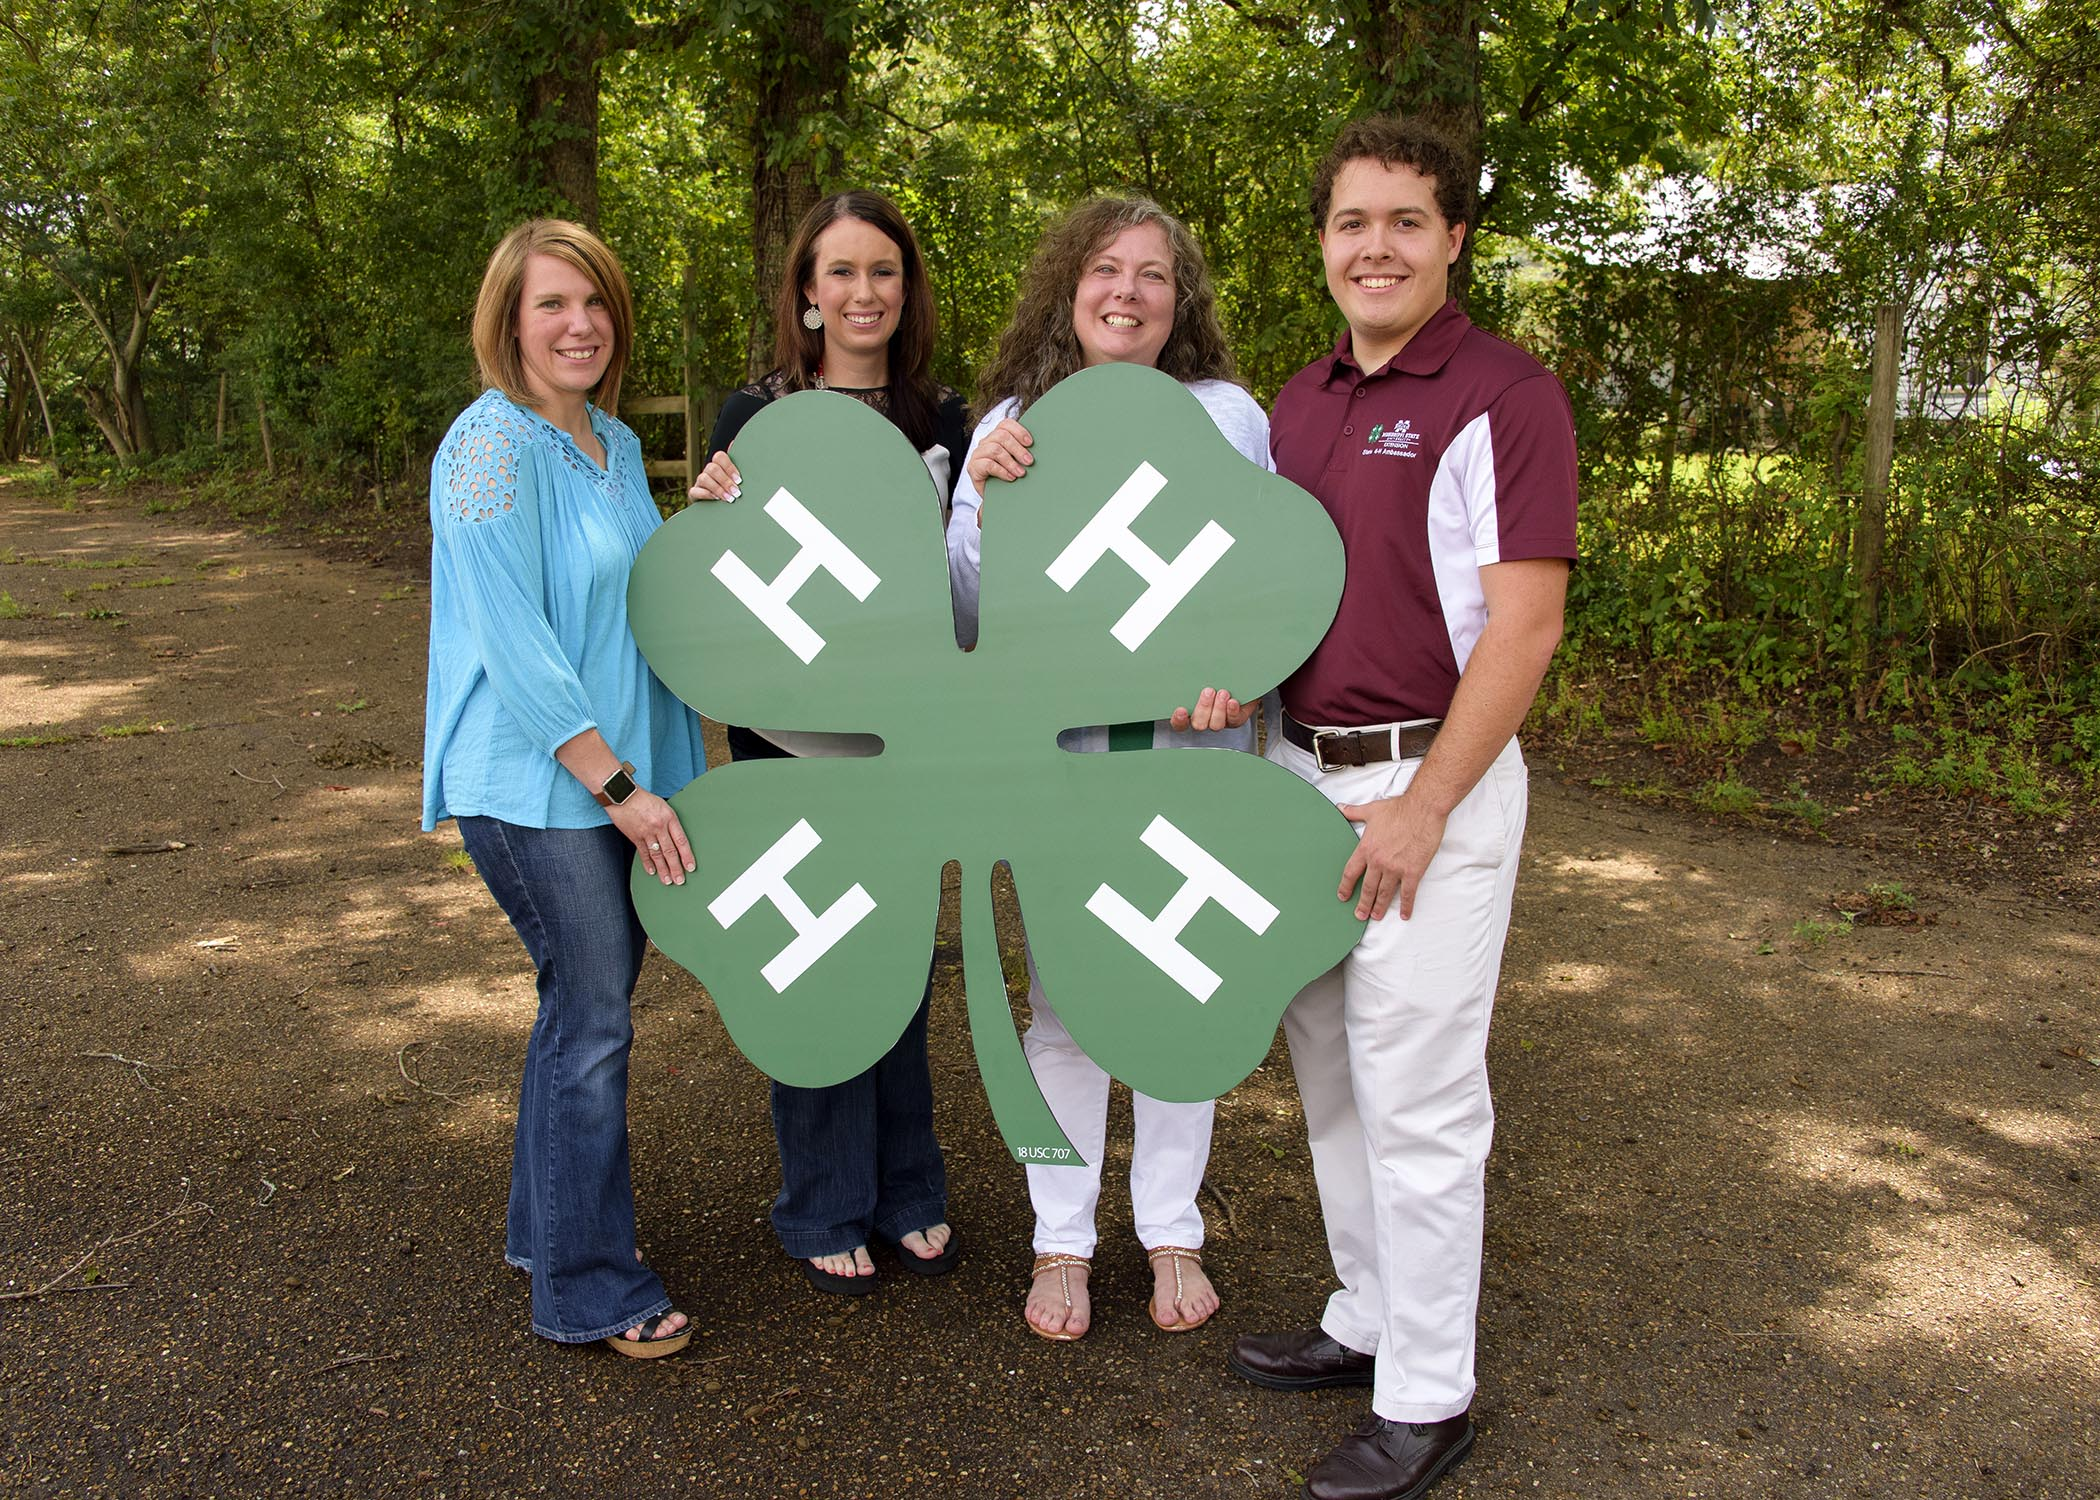 Three females and one male smile as they hold a wooden cutout of the 4-H logo.